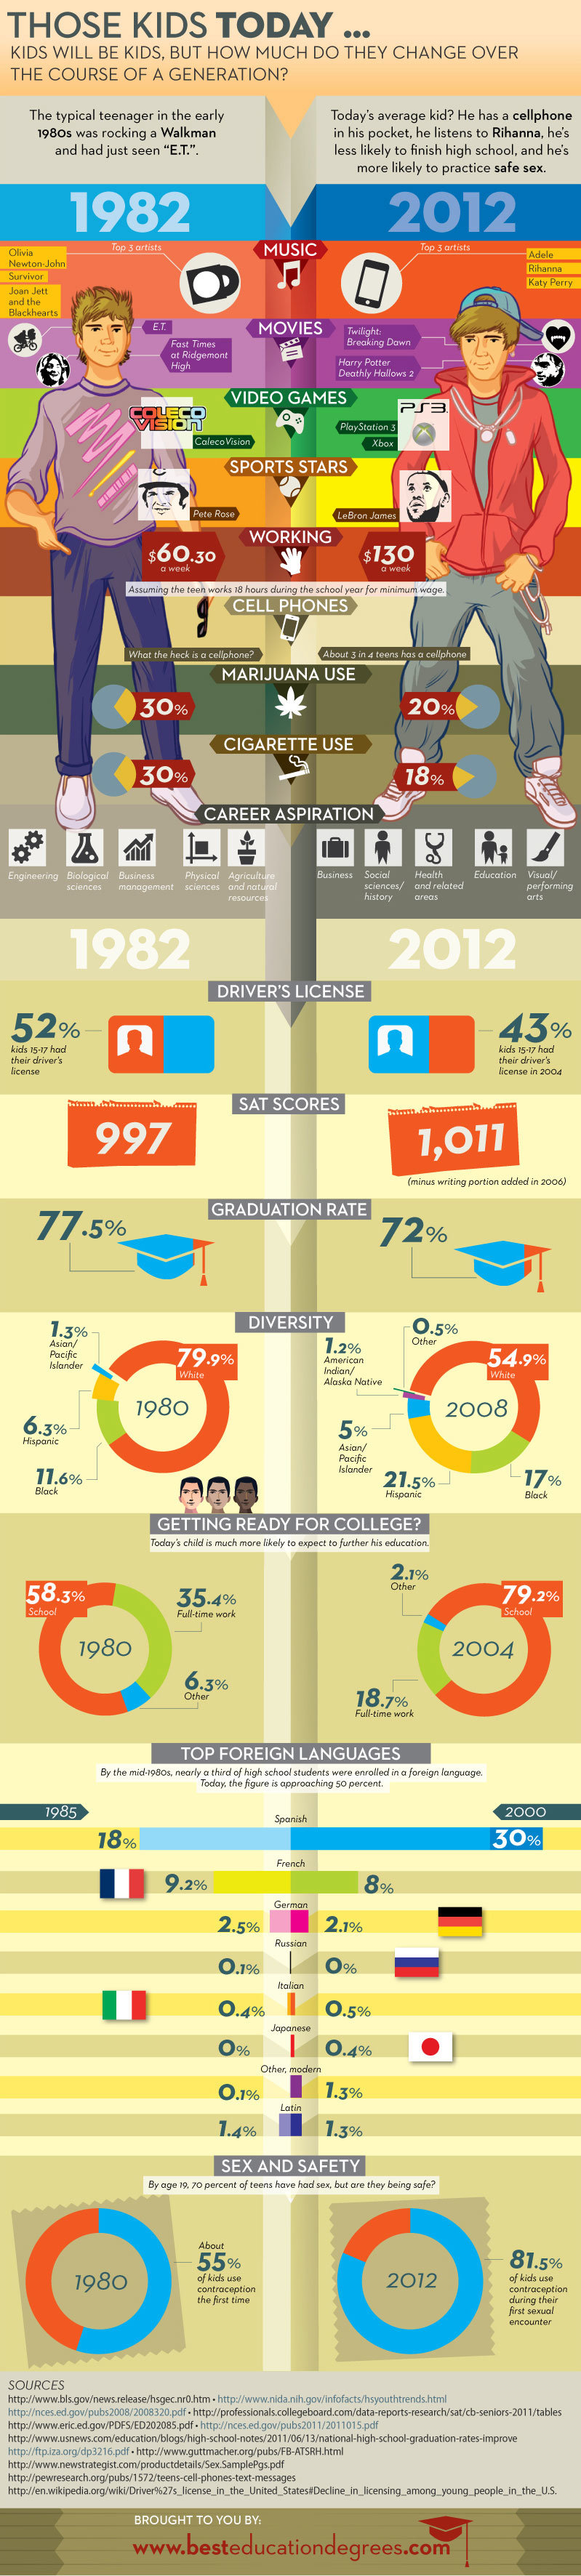 Kids Changes between 1982 and 2012 #Infographic